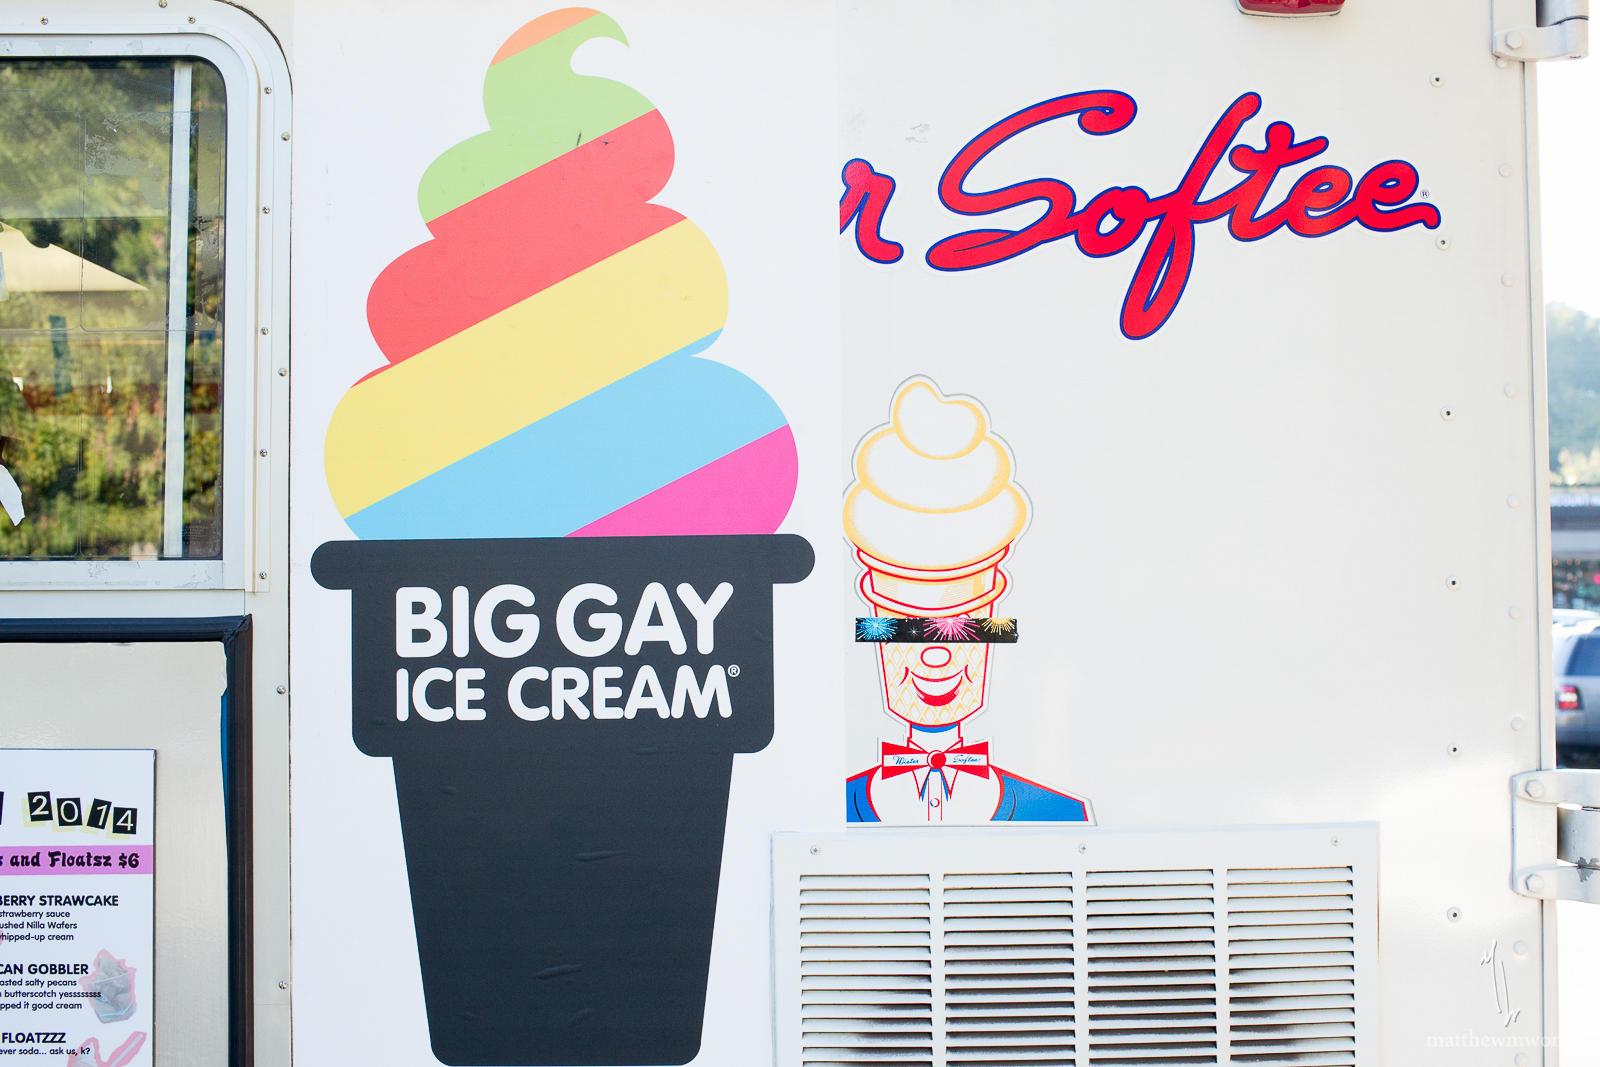 Big Gay Ice Cream, via their Southern Tour 2014, visited Atlanta Oct 20 & 21.